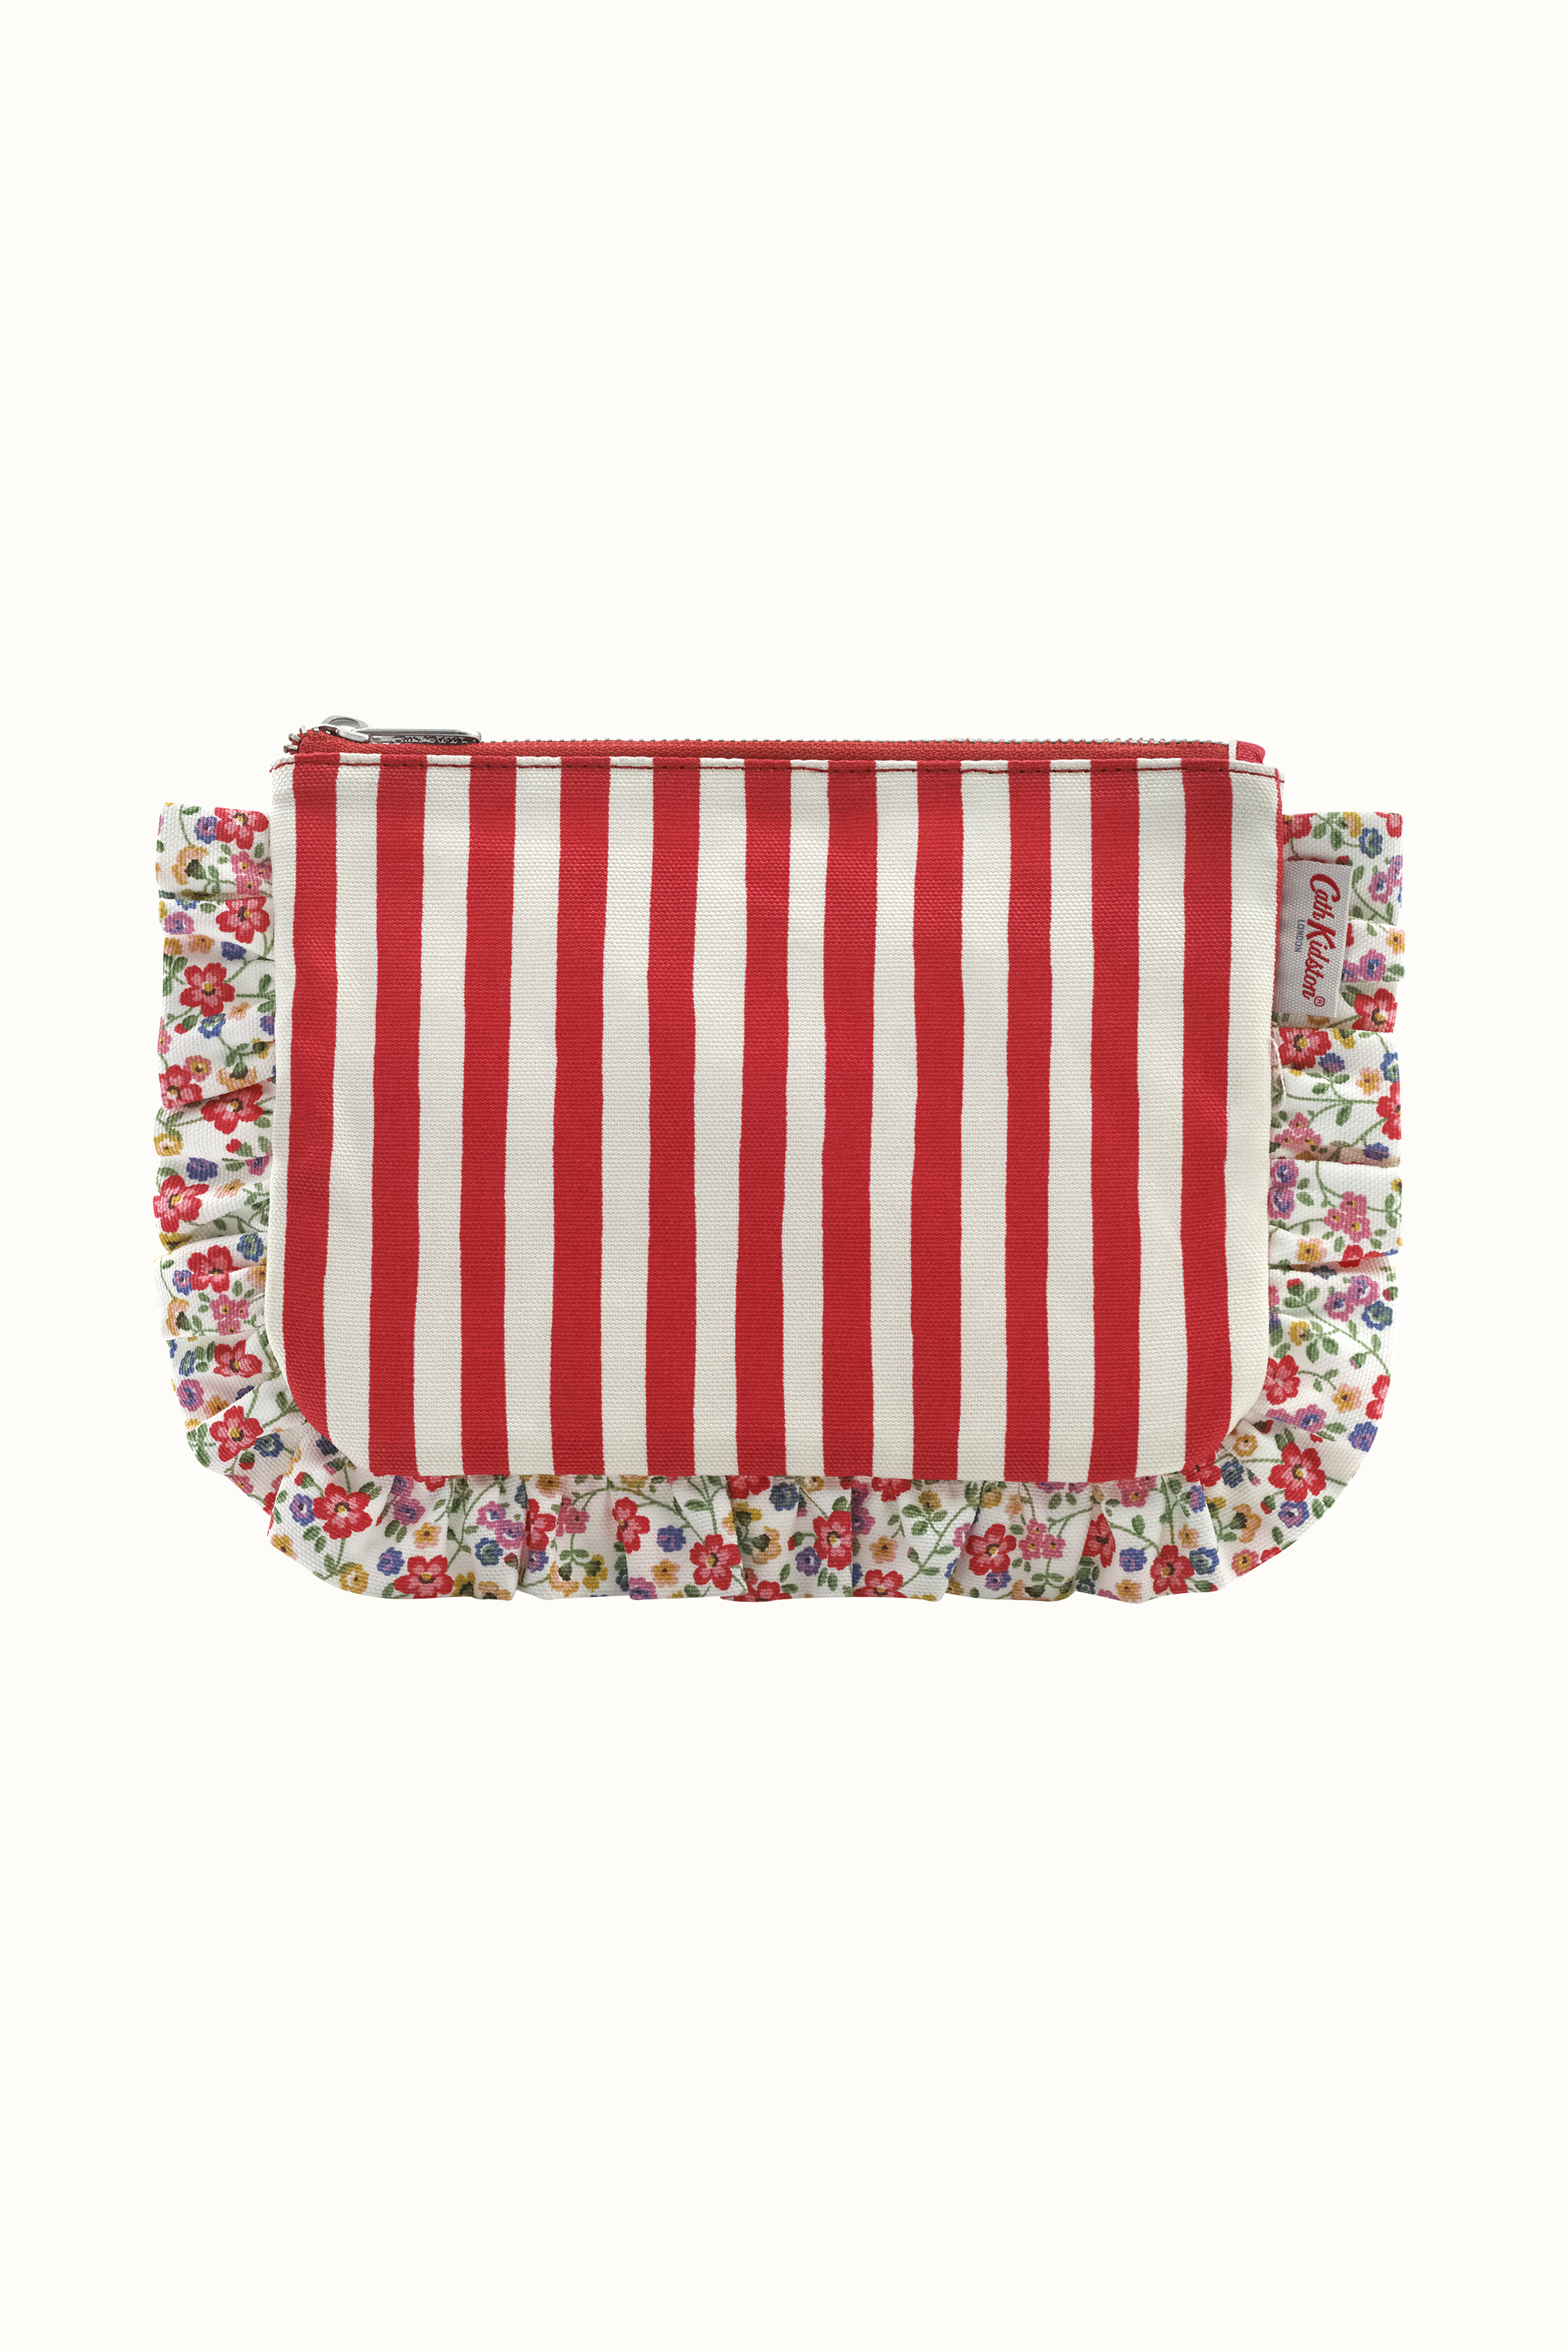 Cath Kidston Candy Stripe Frilly Pouch in Red